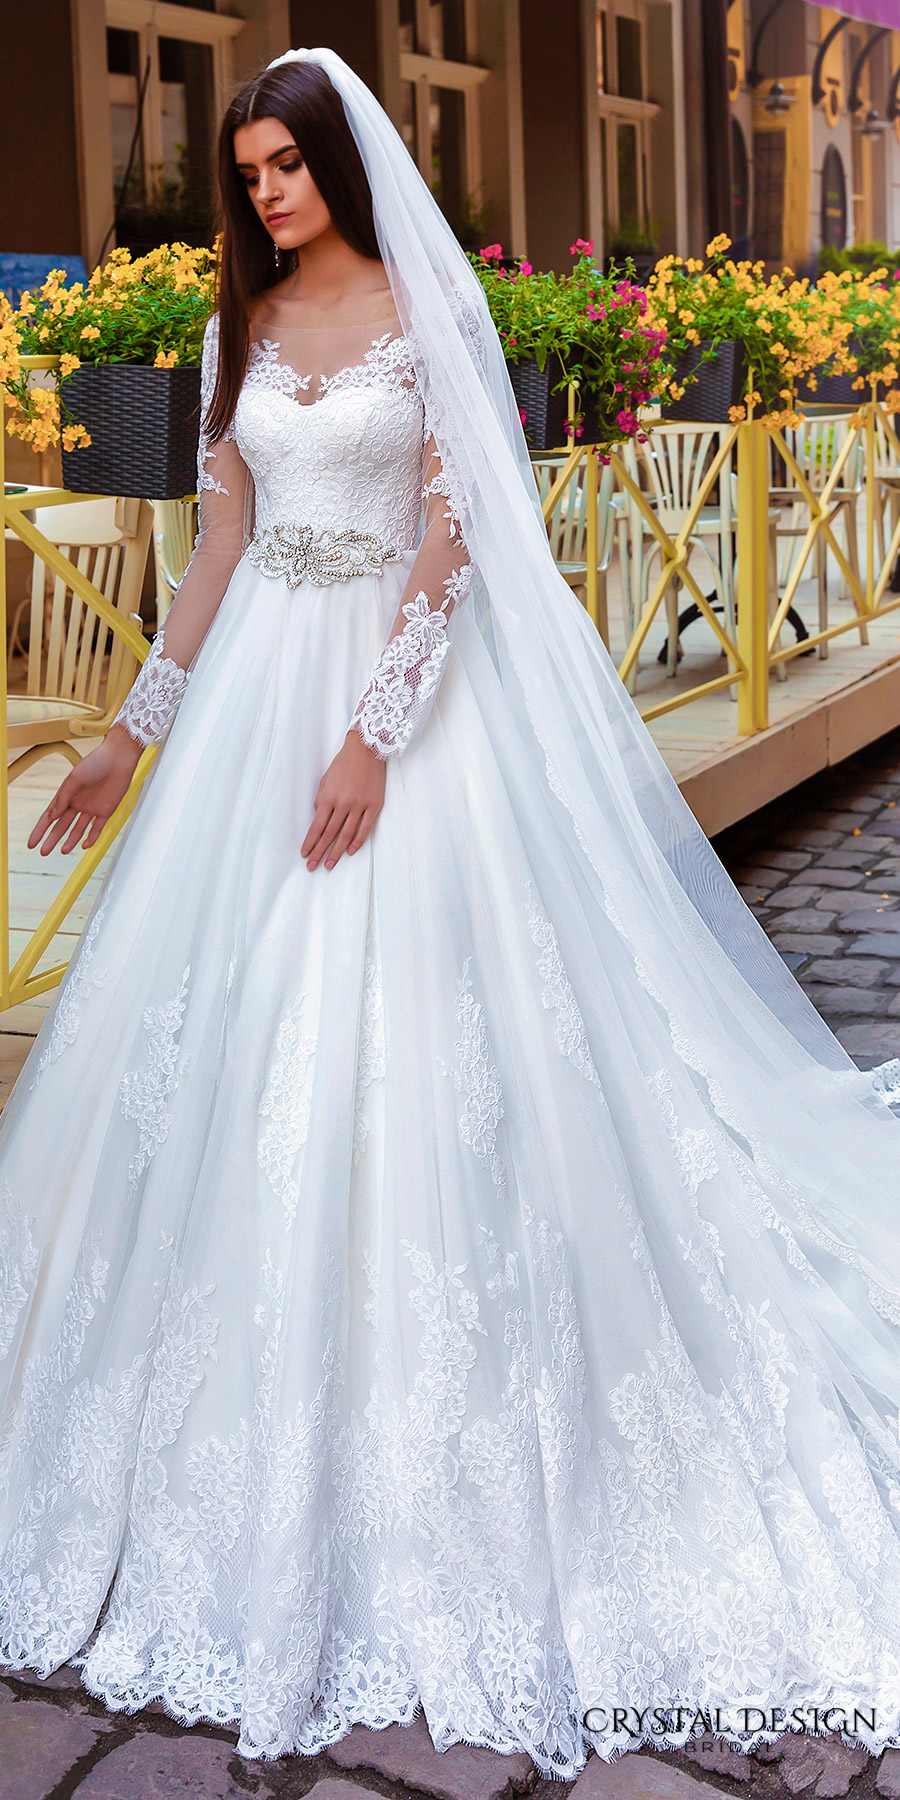 dc2818c558 crystal design bridal 2016 sheer long sleeves sweetheart neckline heavily  embellished bodice belt princess ball gown